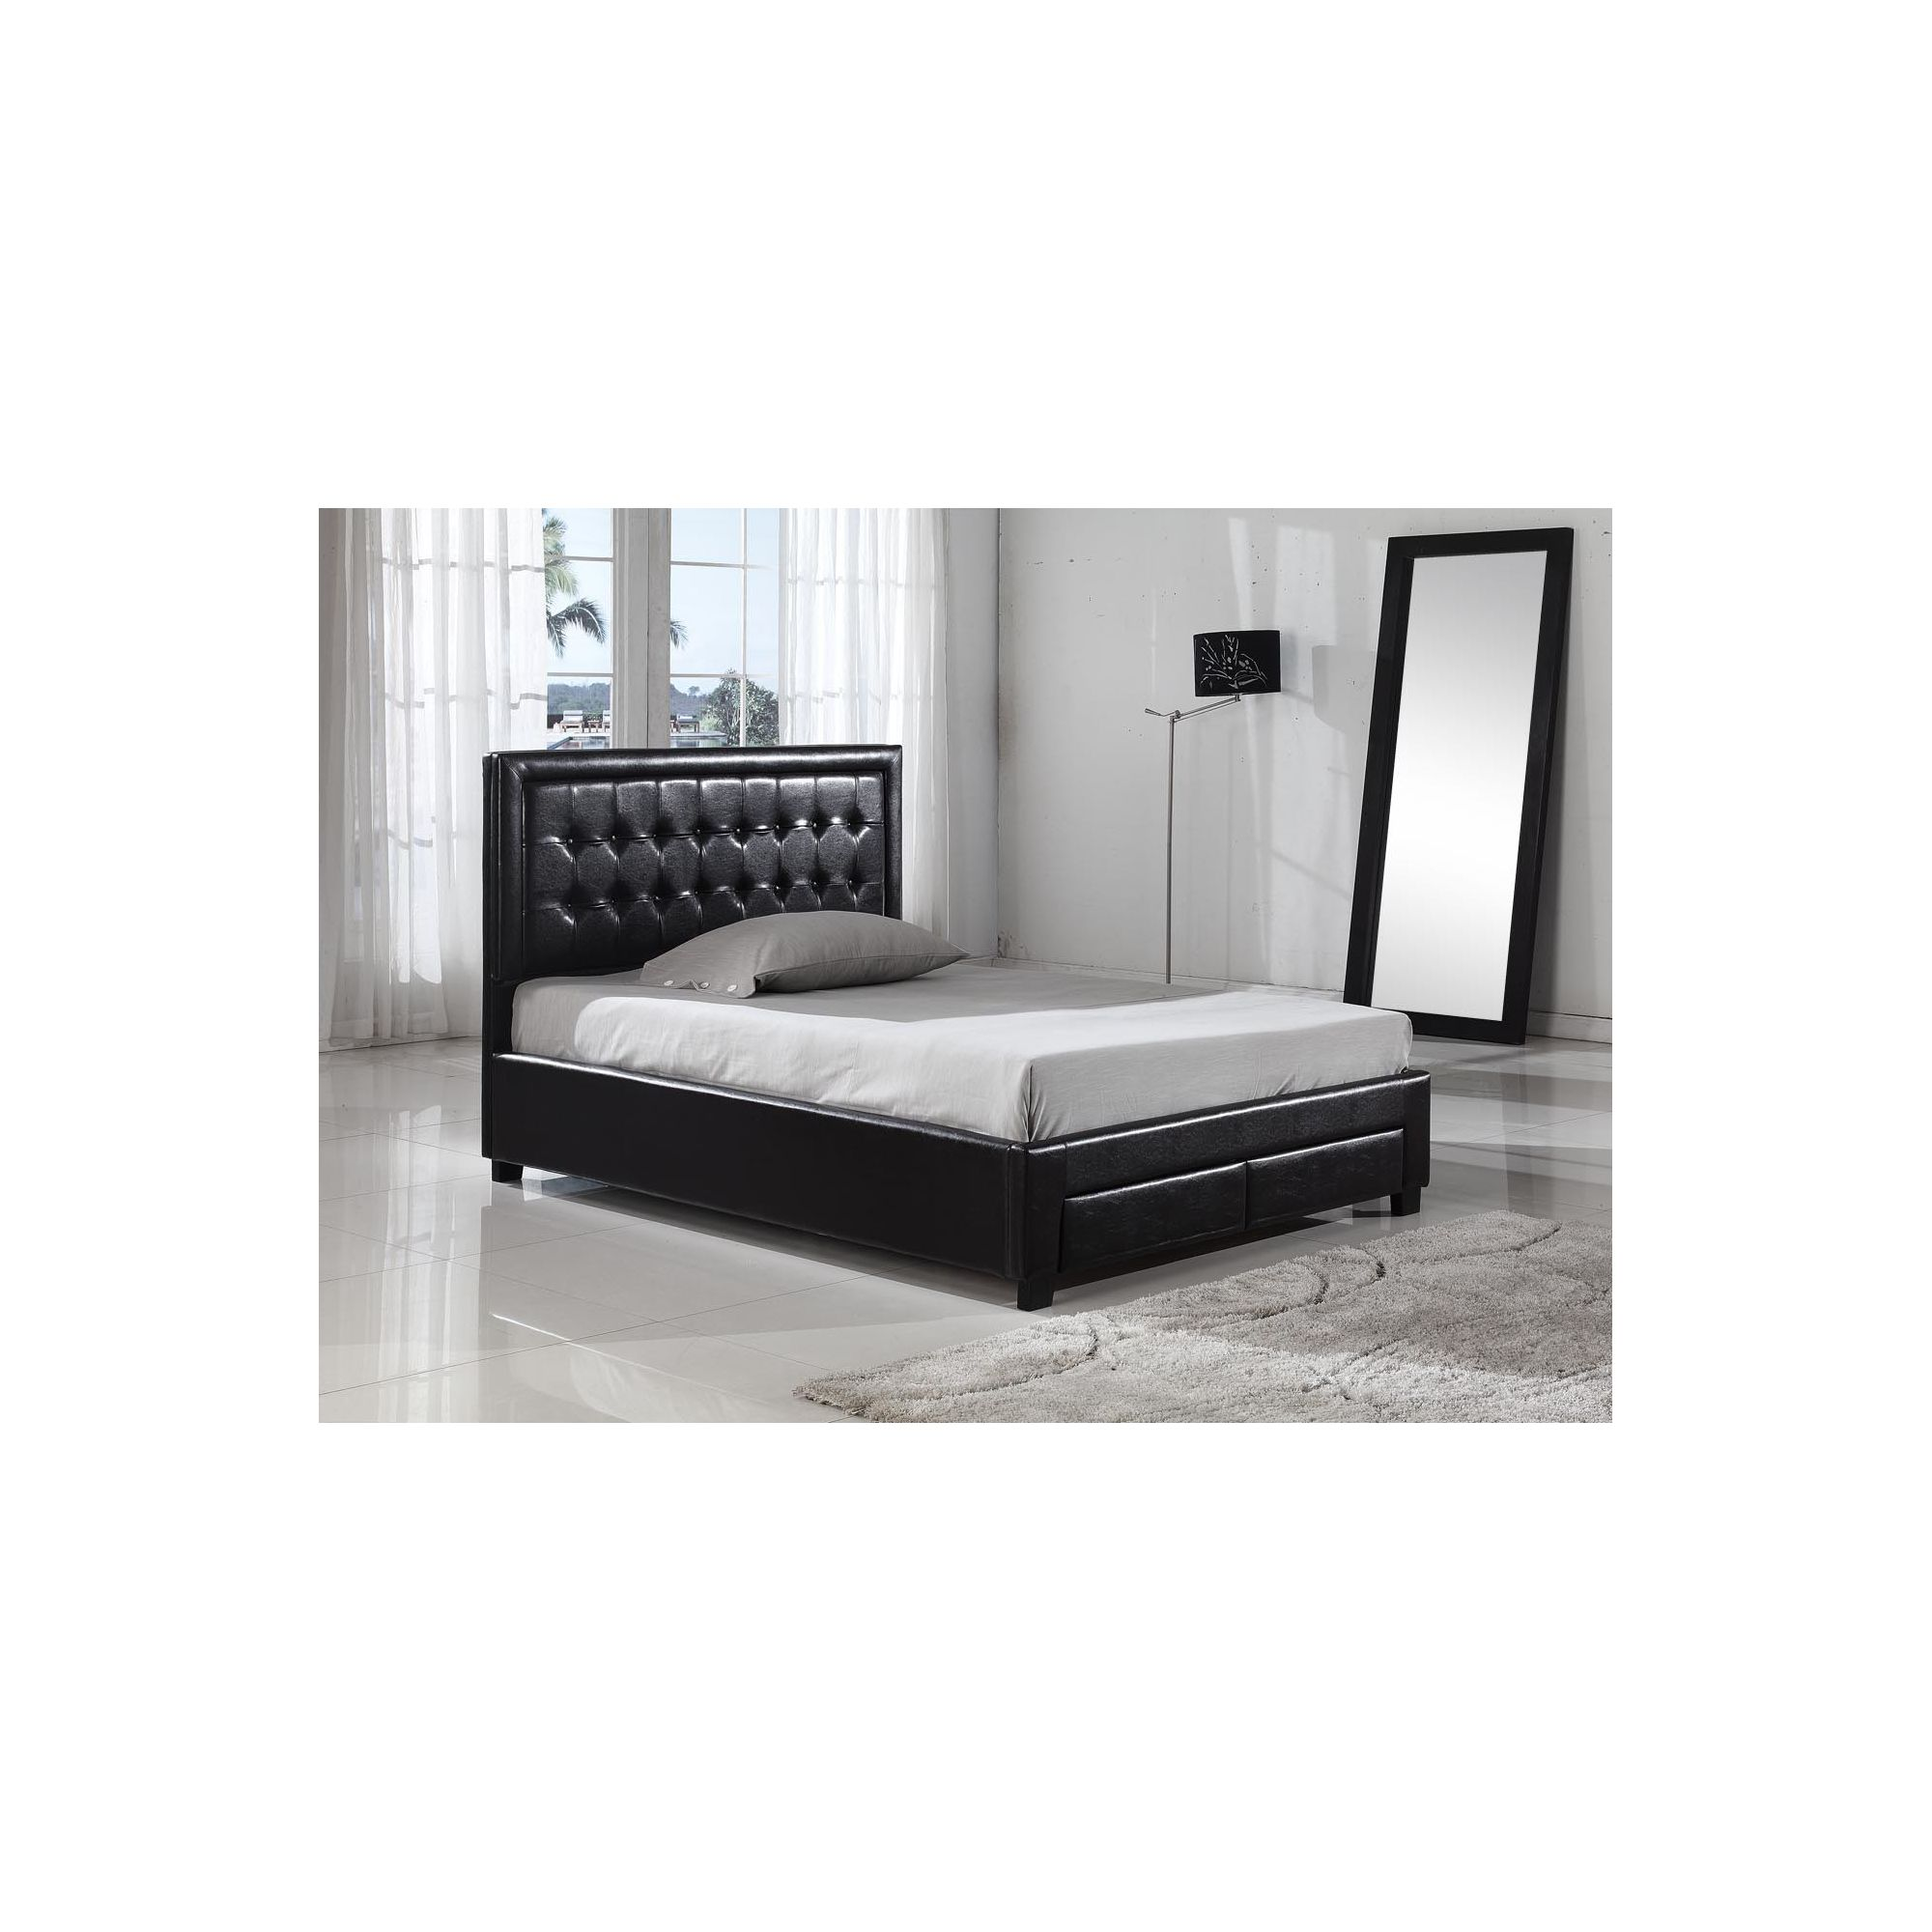 Interiors 2 suit Verona Bedframe - Double - Black at Tesco Direct